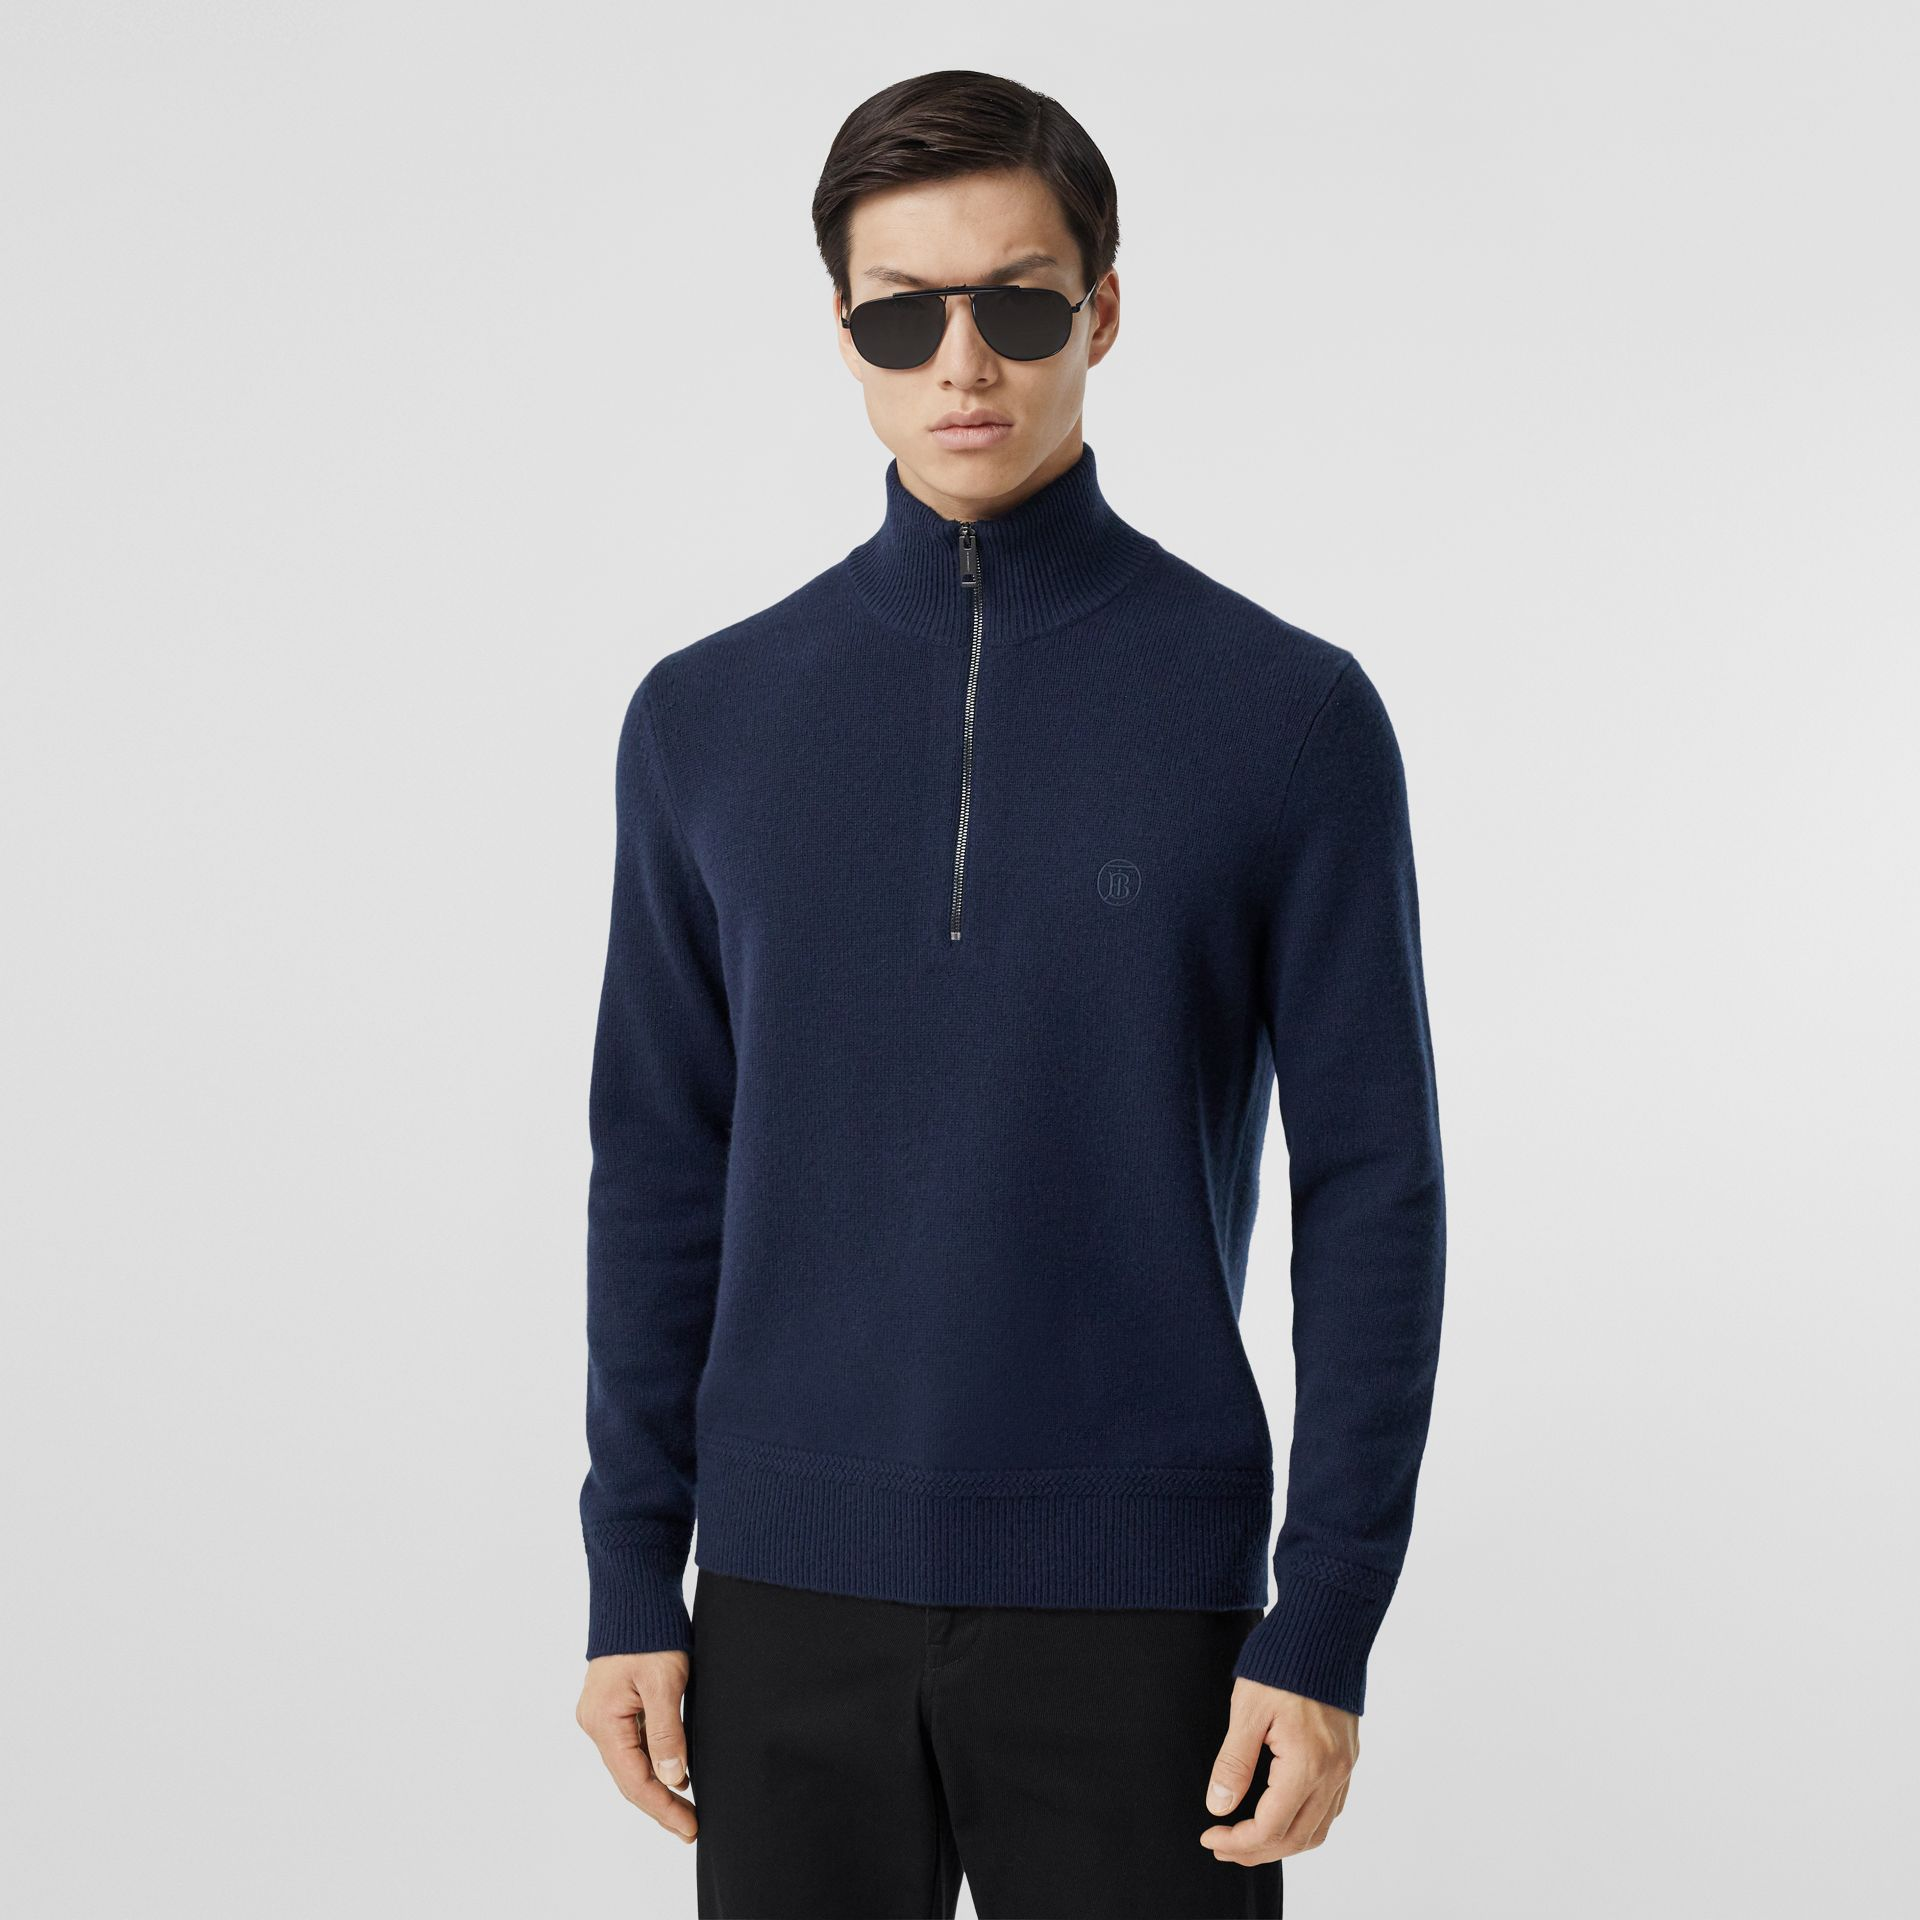 Monogram Motif Cashmere Funnel Neck Sweater in Navy - Men | Burberry - gallery image 0